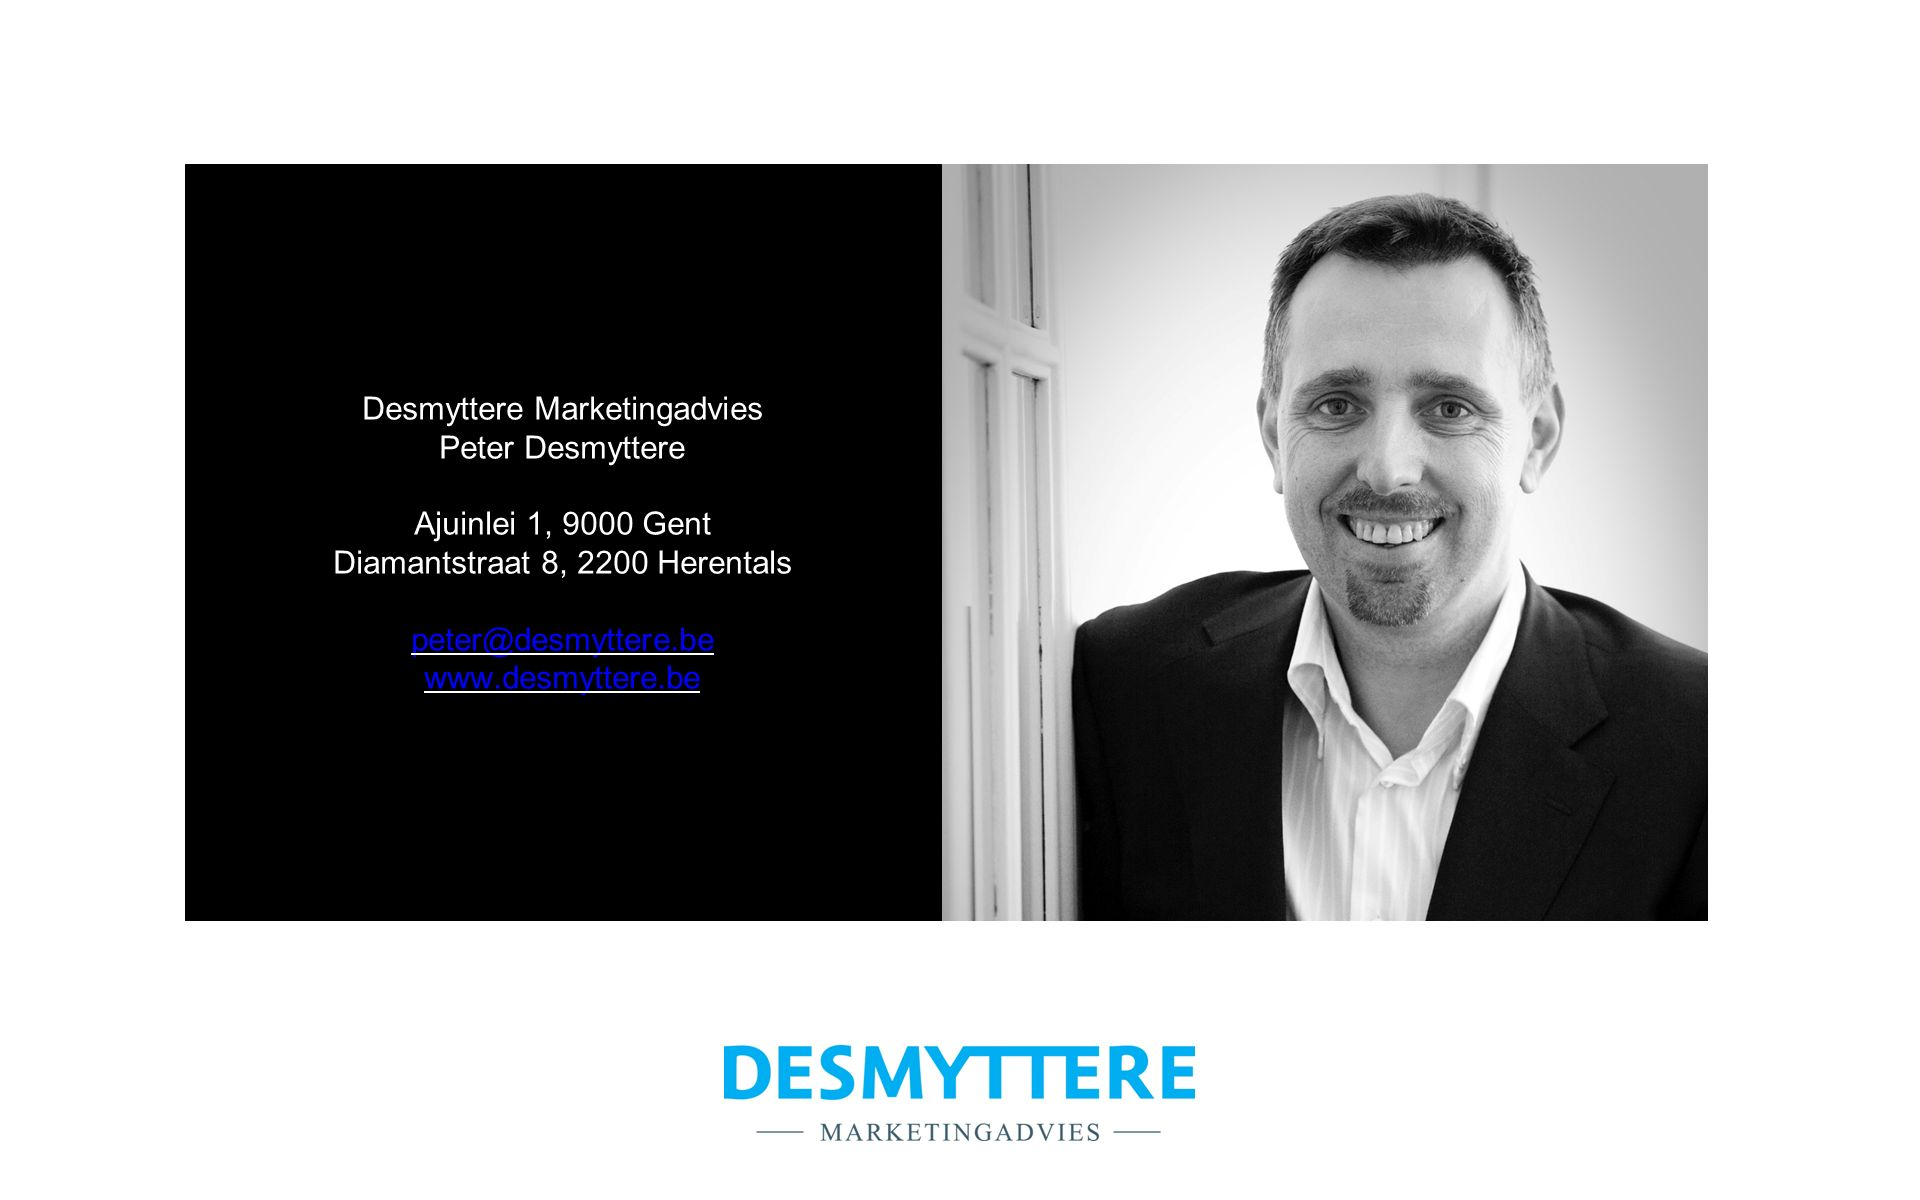 Desmyttere Marketingadvies Peter Desmyttere Ajuinlei 1, 9000 Gent Diamantstraat 8, 2200 Herentals peter@desmyttere.be www.desmyttere.be